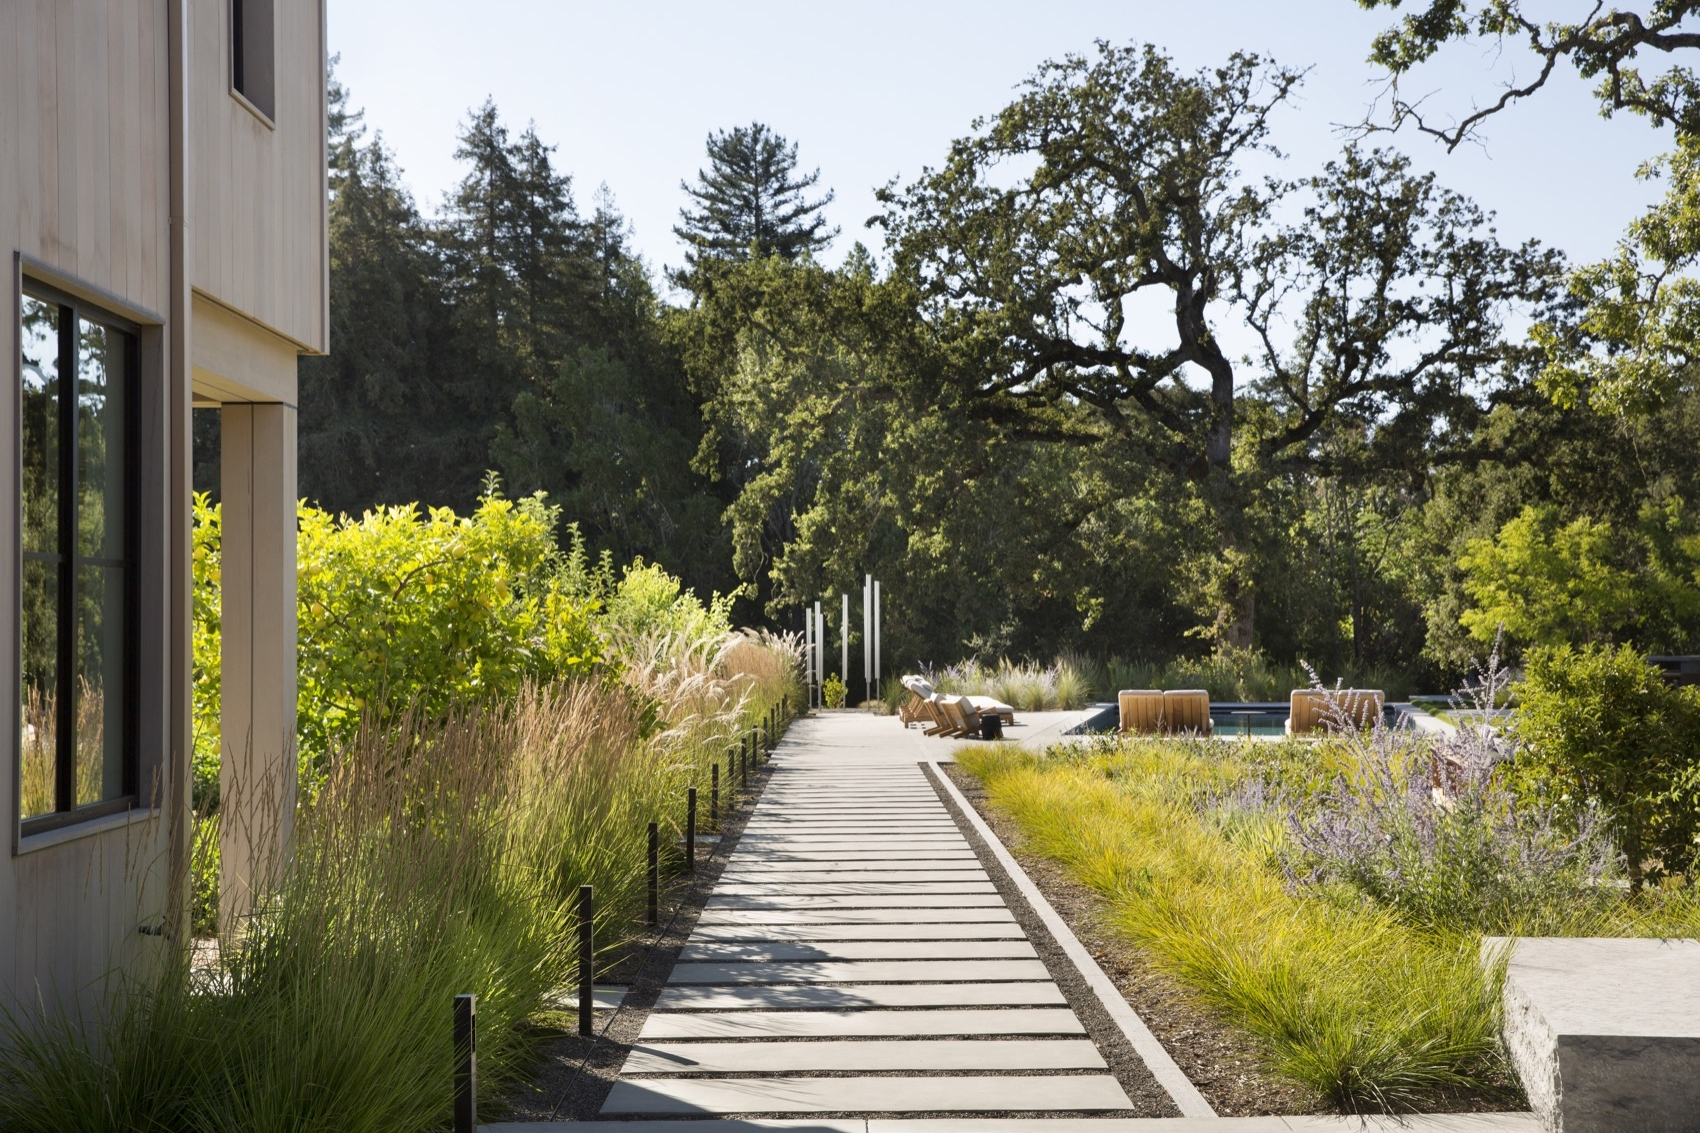 The fulcrum courtyard anchors the paths that radiate around the landscape. The sculpture in the distance can be used as musical chimes.